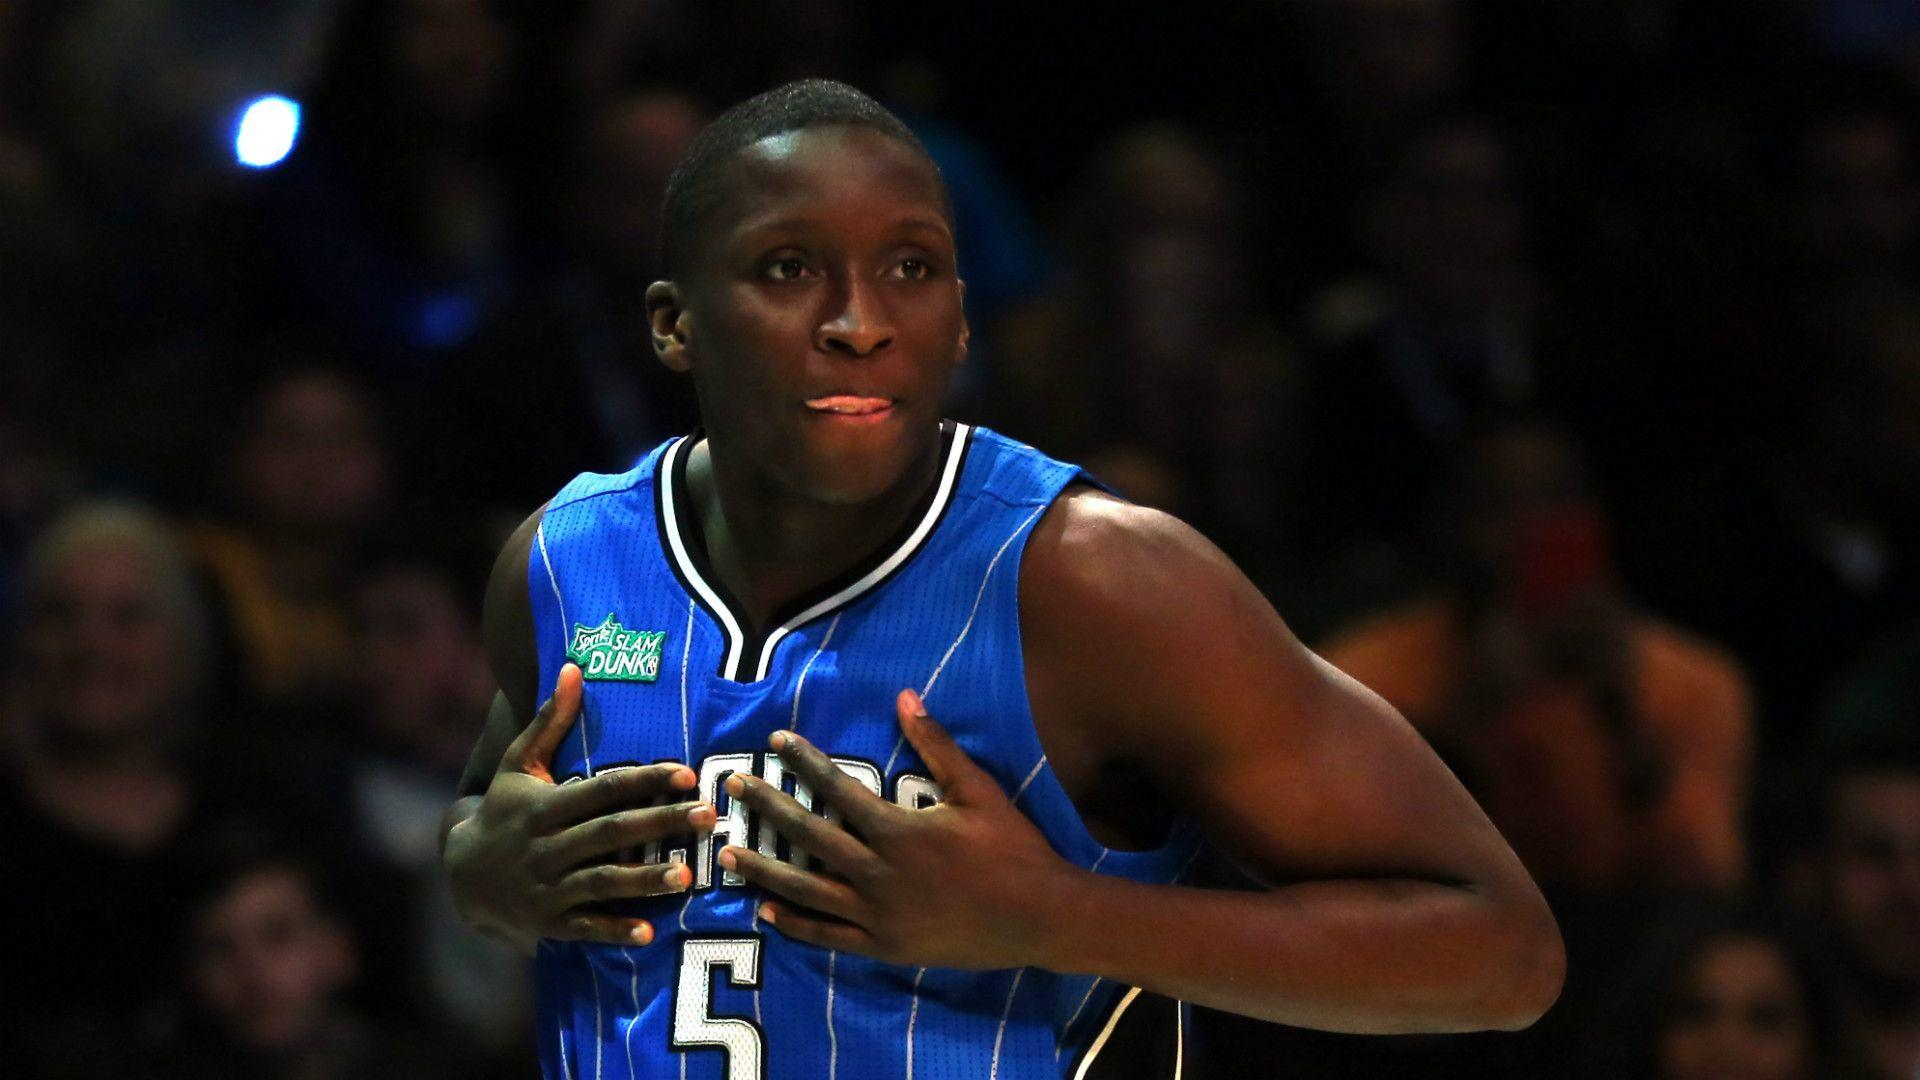 Victor Oladipo may play for Nigeria in 2016 Rio Olympics